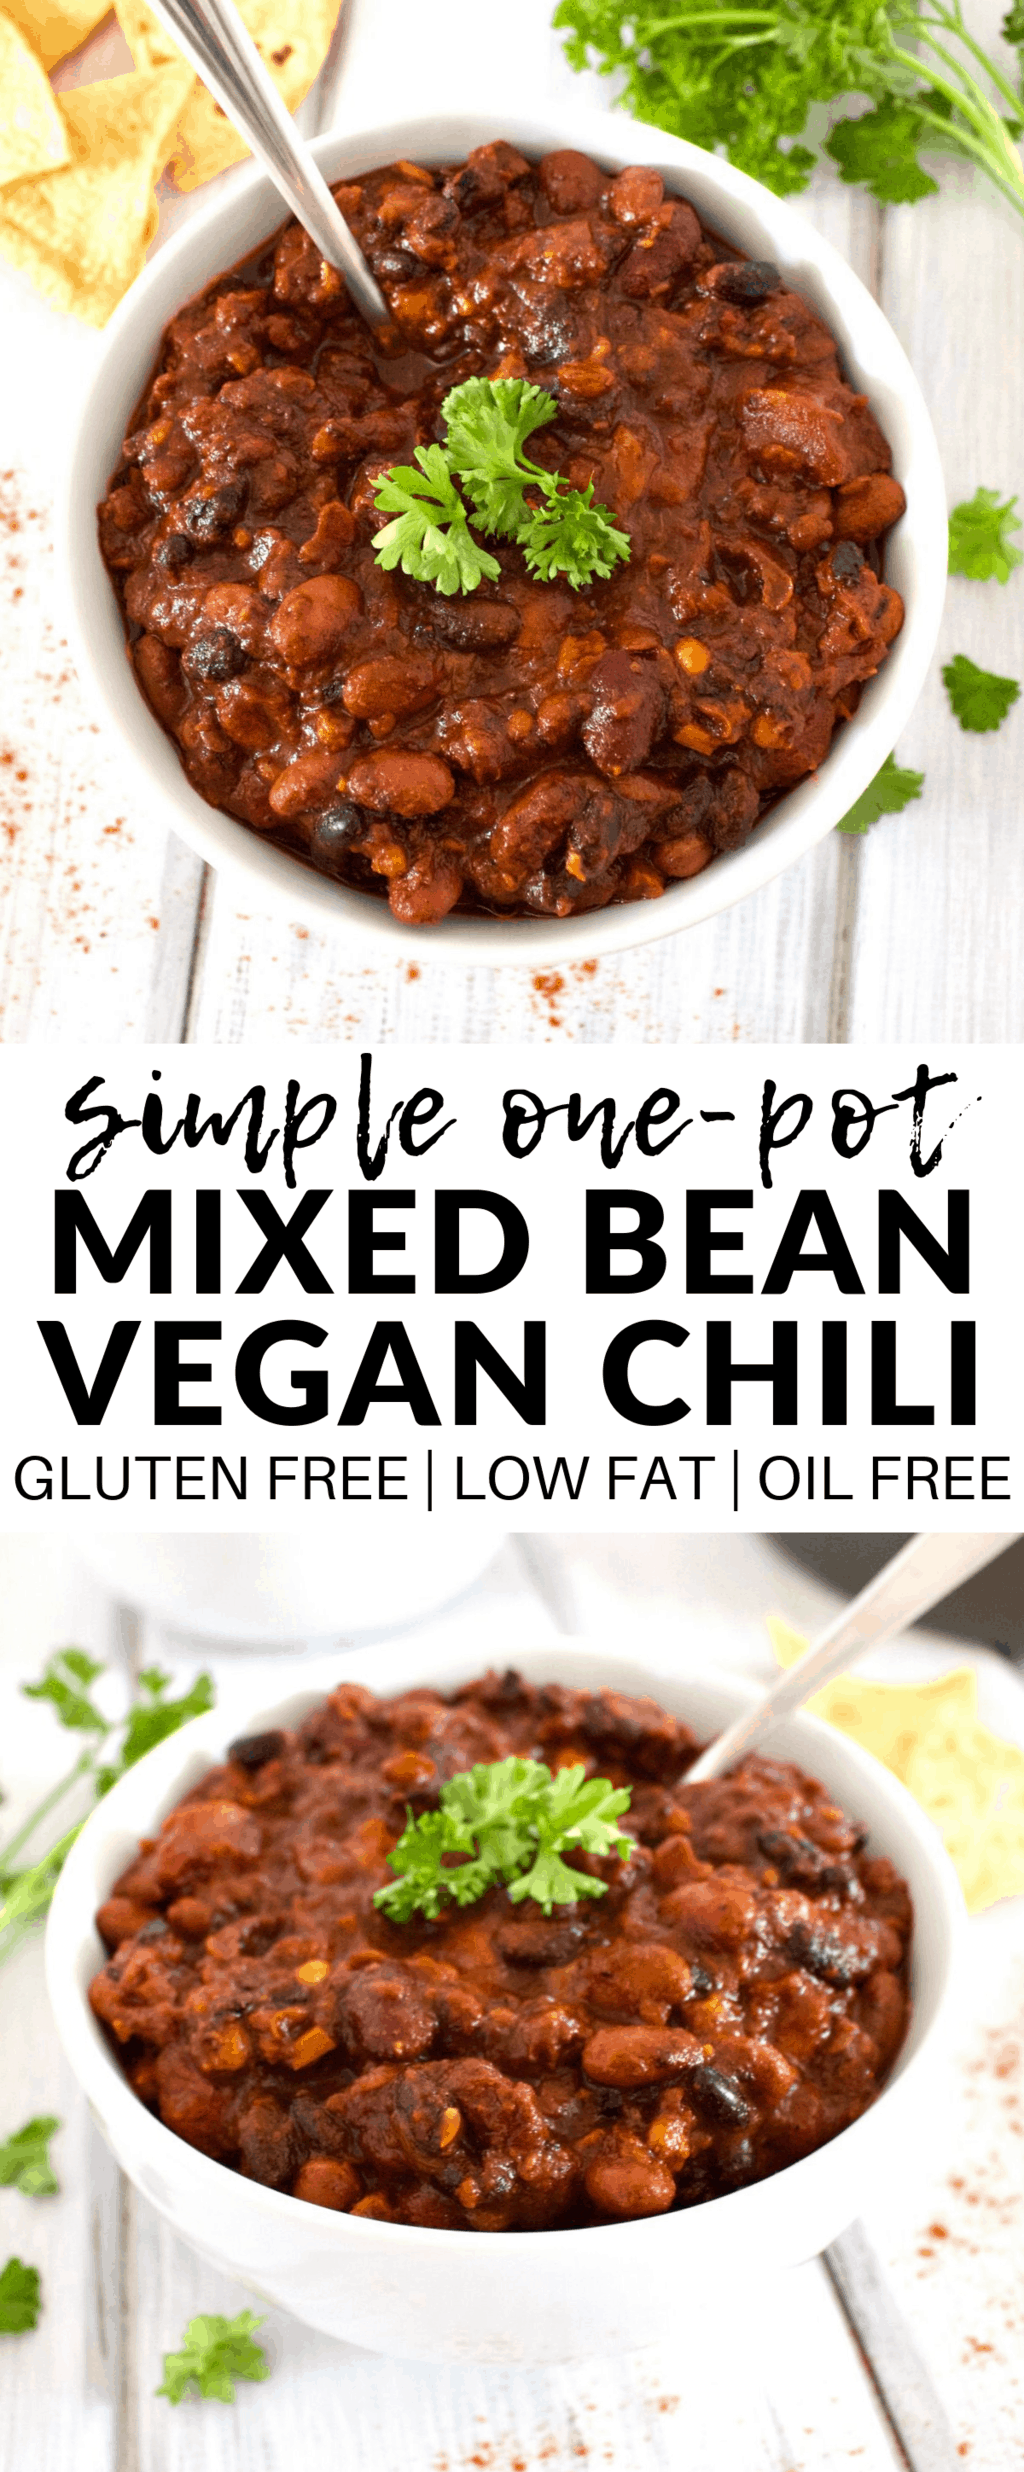 This amazing Vegan One-Pot Bean Chili is so delicious! A perfect, easy vegan lunch or dinner. It's also gluten-free & oil-free!